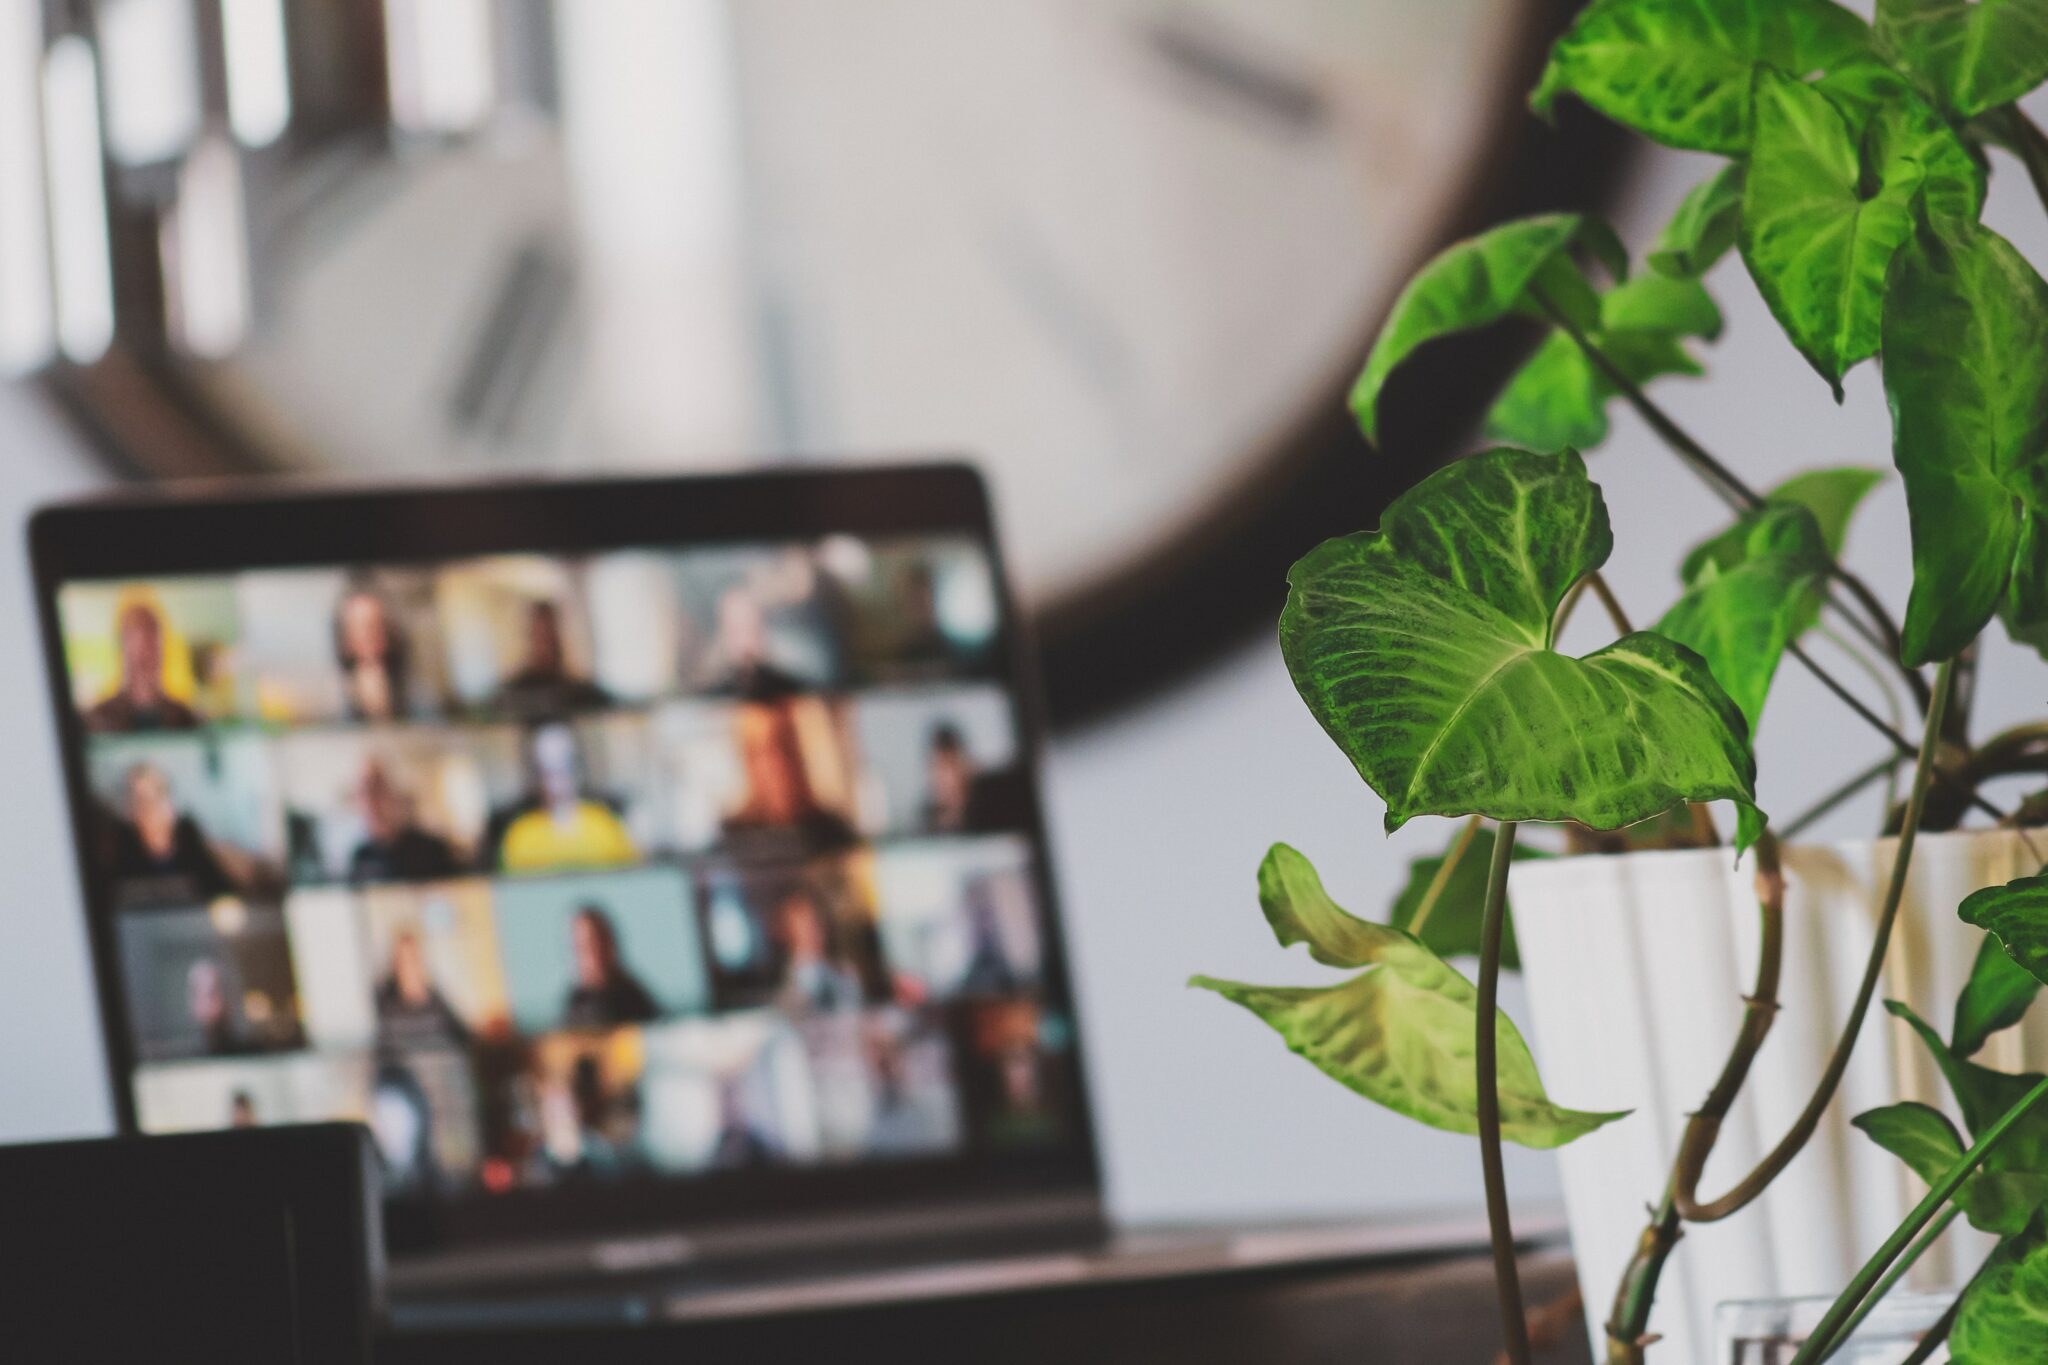 Remote meeting in a hybrid workplace